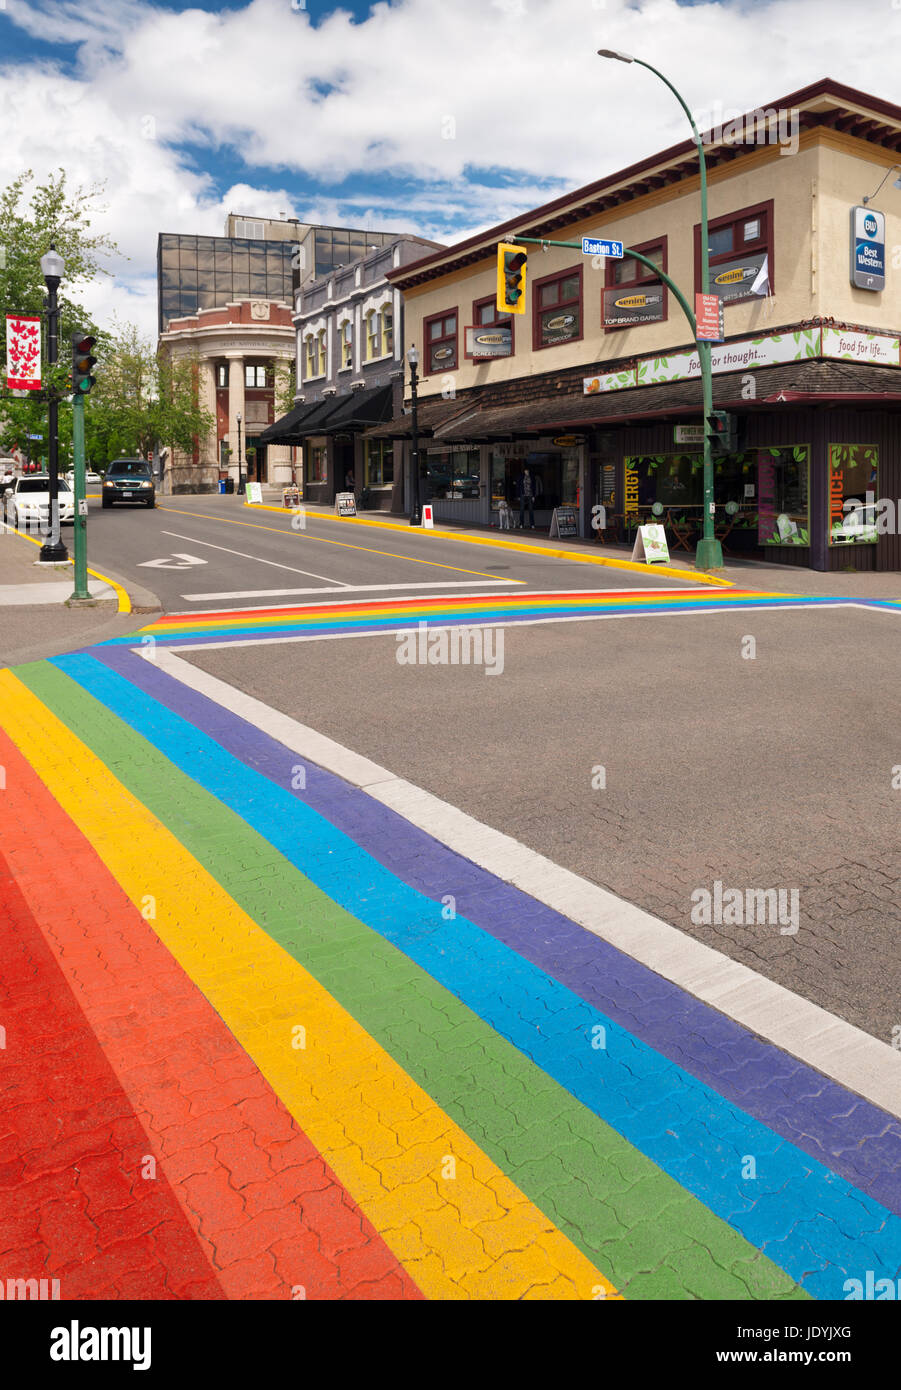 Nanaimo city downtown colorful rainbow crosswalk at Bastion and Commercial streets. Vancouver Island, British Columbia, - Stock Image